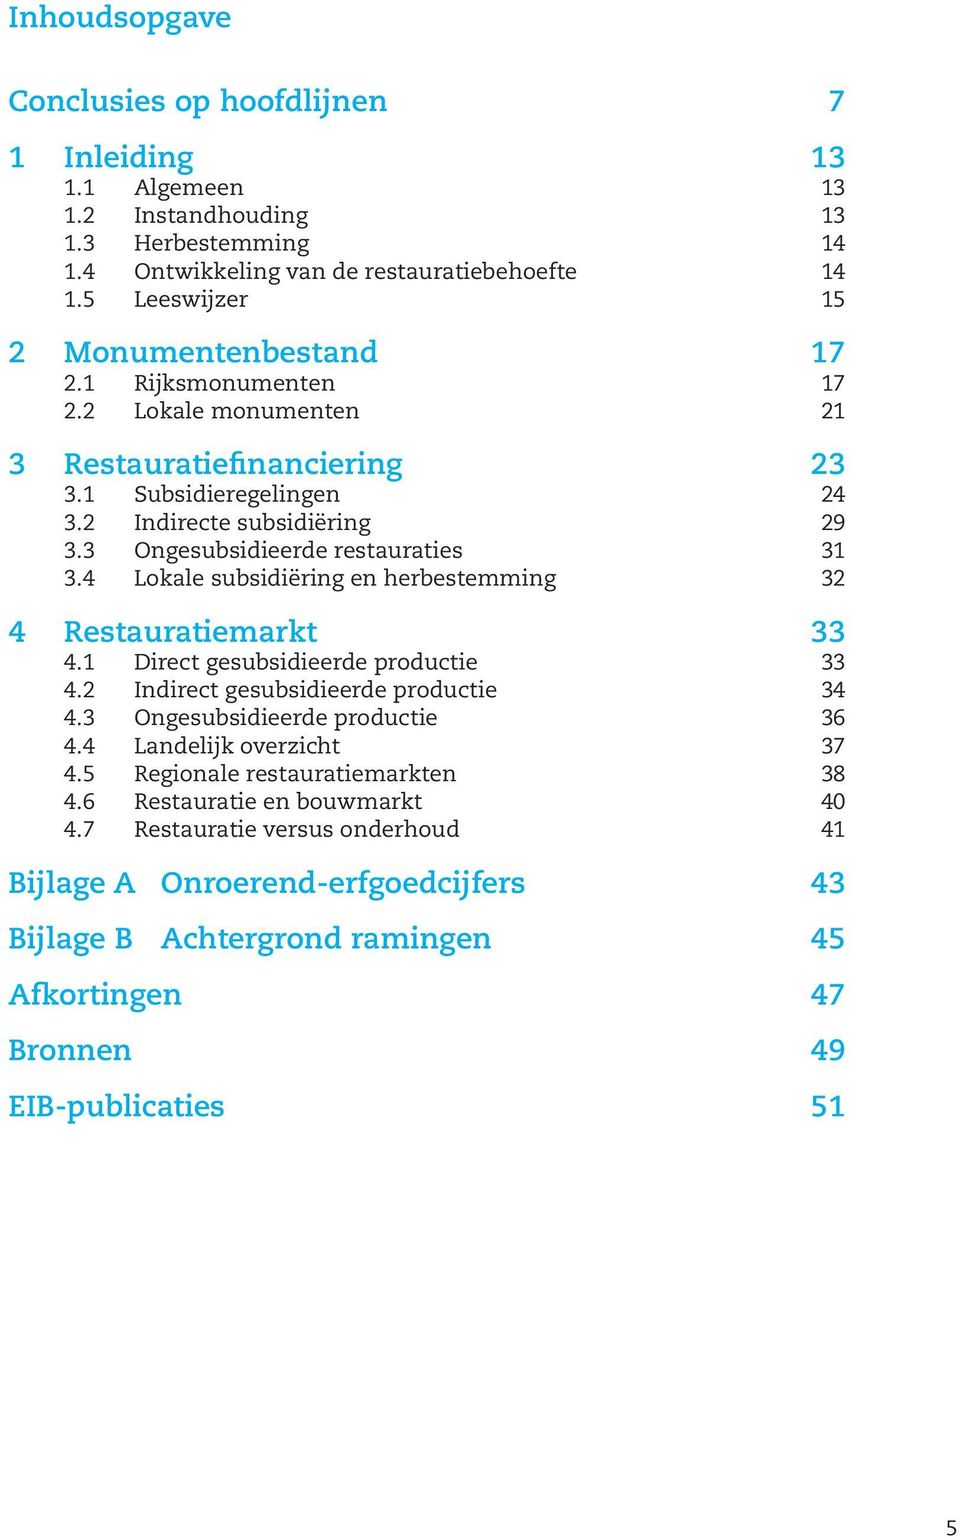 3 Ongesubsidieerde restauraties 31 3.4 Lokale subsidiëring en herbestemming 32 4 Restauratiemarkt 33 4.1 Direct gesubsidieerde productie 33 4.2 Indirect gesubsidieerde productie 34 4.